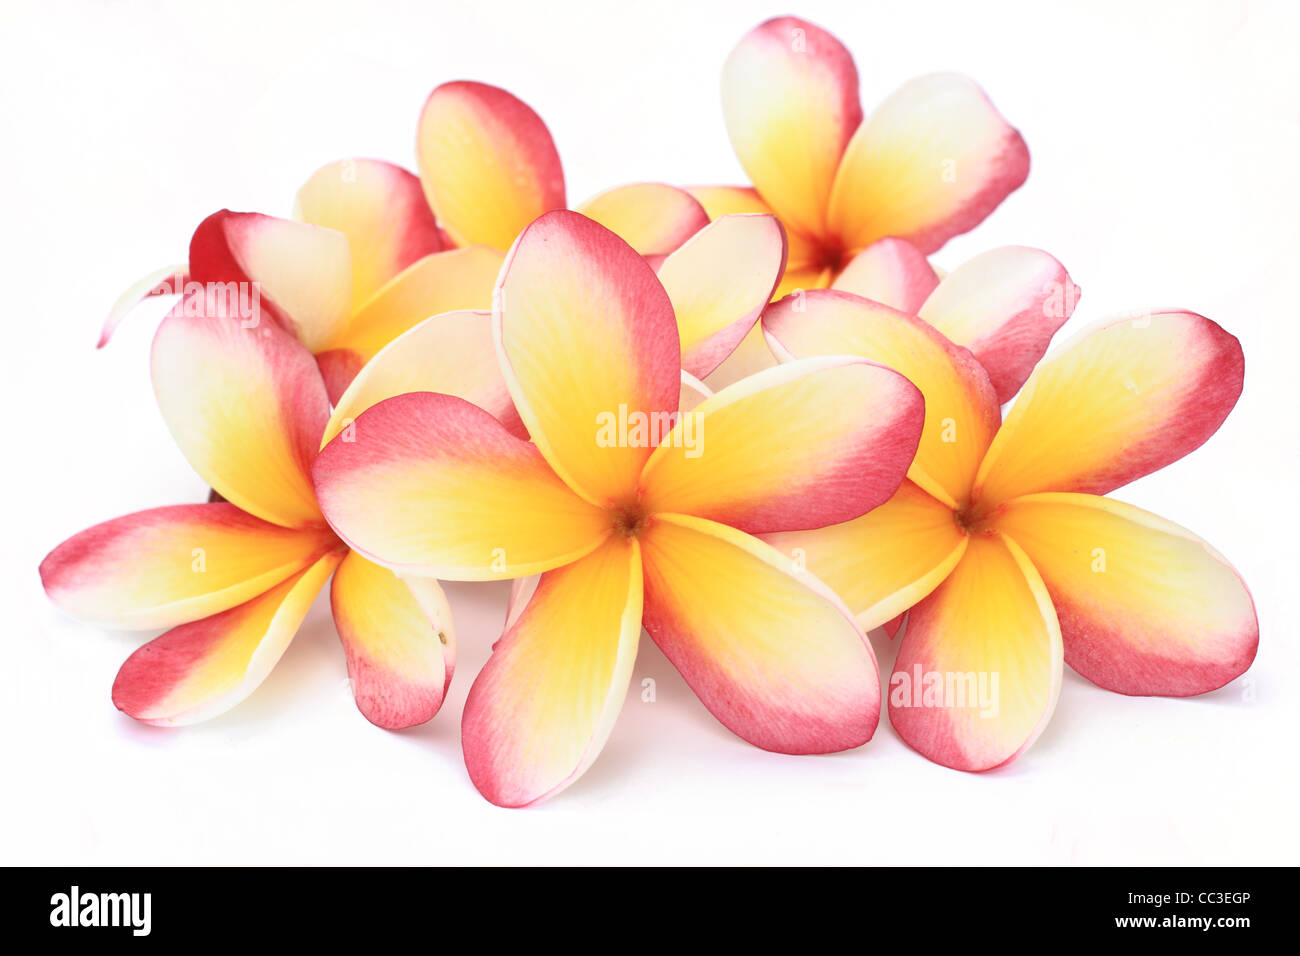 Frangipani Flowers On White Background Stock Photo 41873910 Alamy